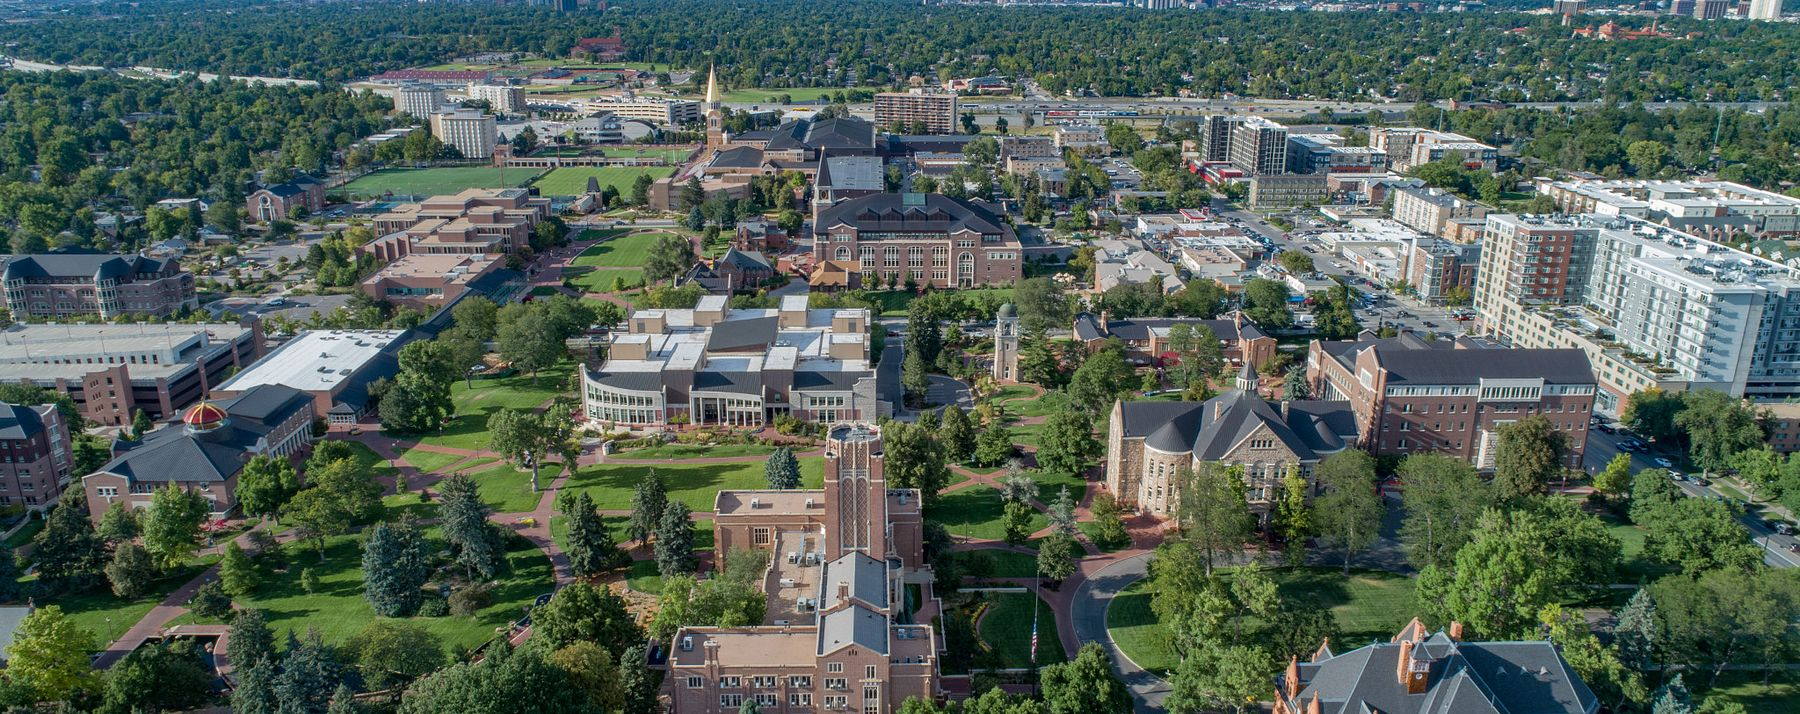 aerial shot of campus